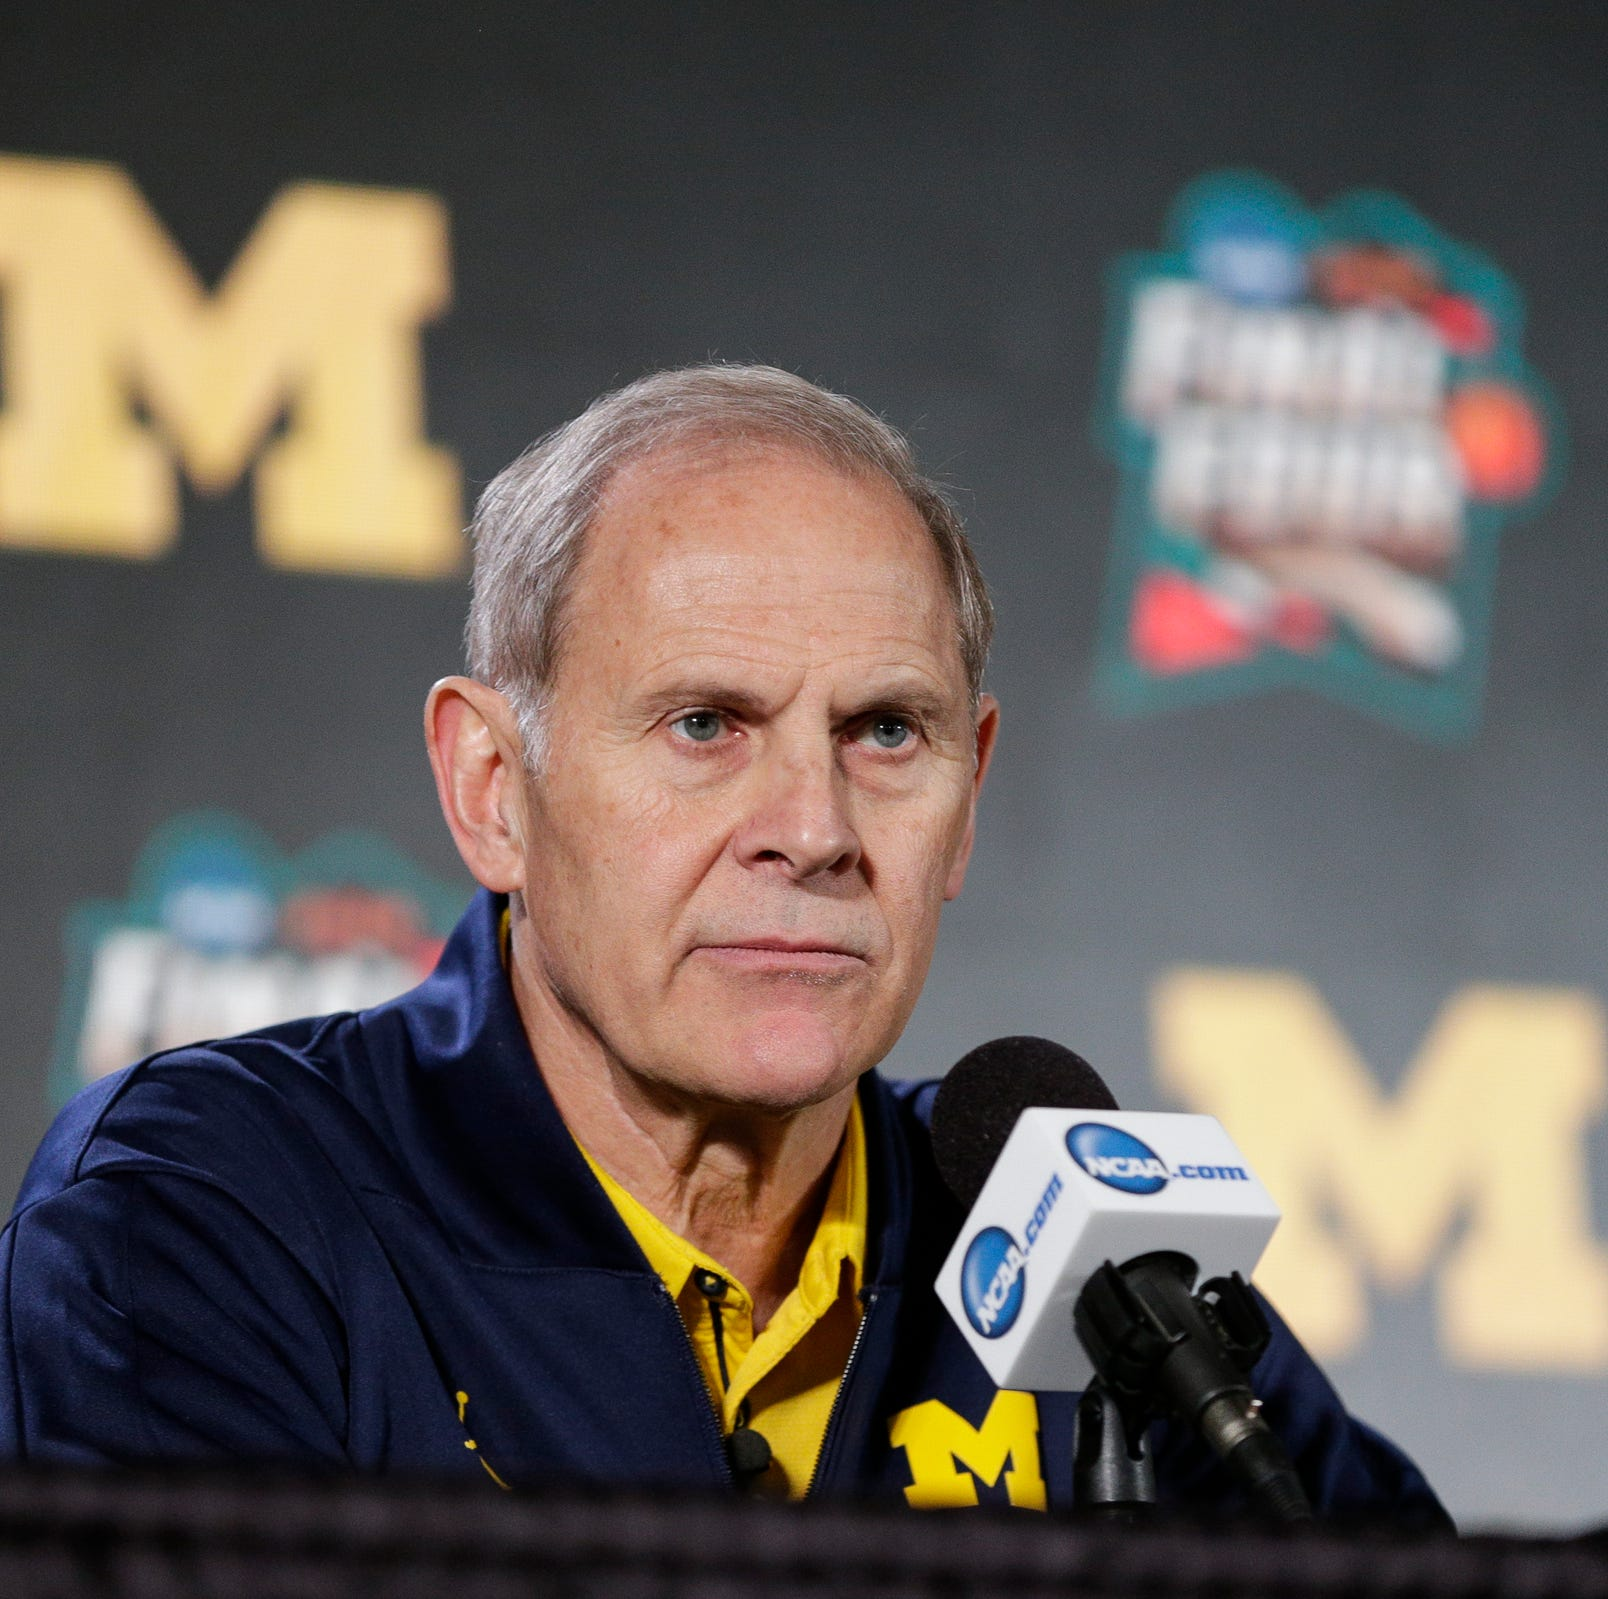 Michigan basketball's John Beilein leaving to coach NBA's Cleveland Cavaliers